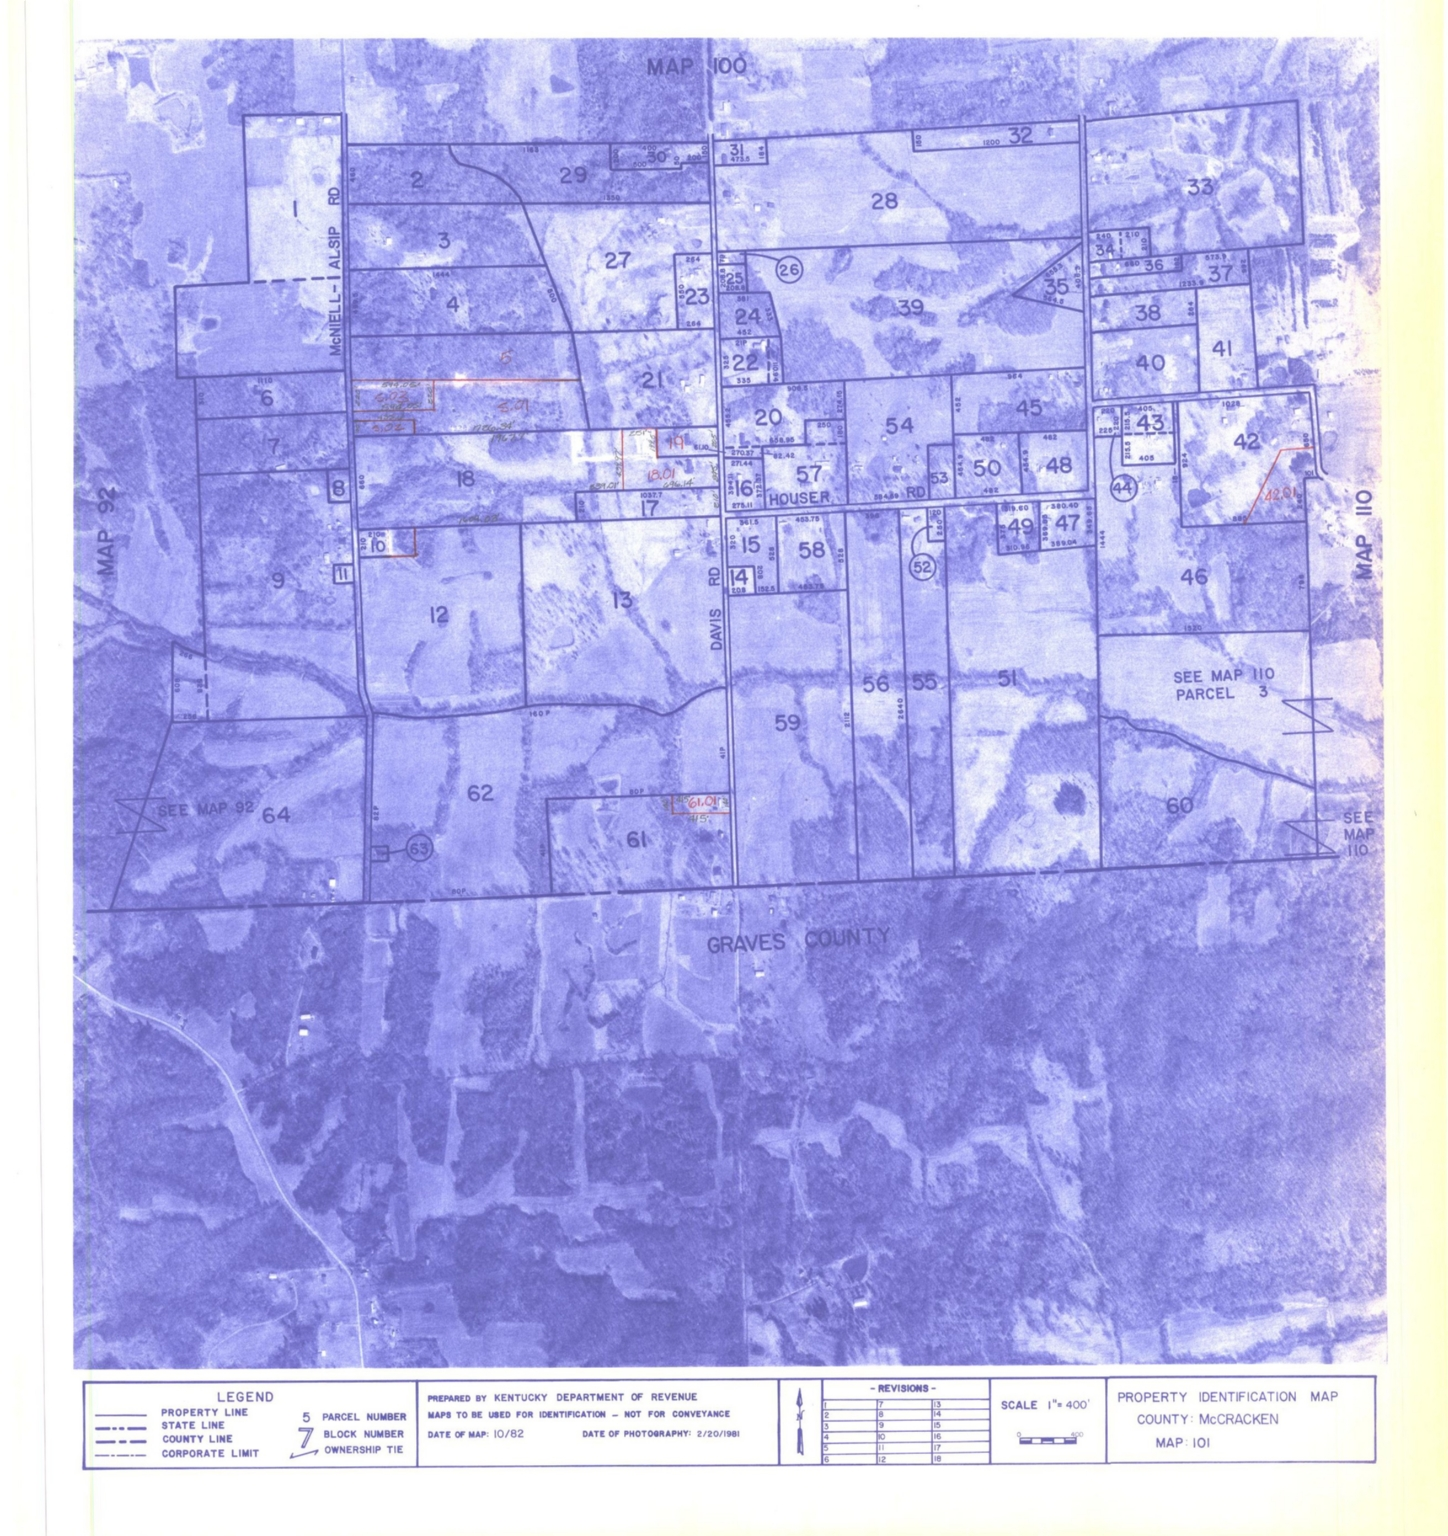 Property Identification Map McCracken County, Map 101